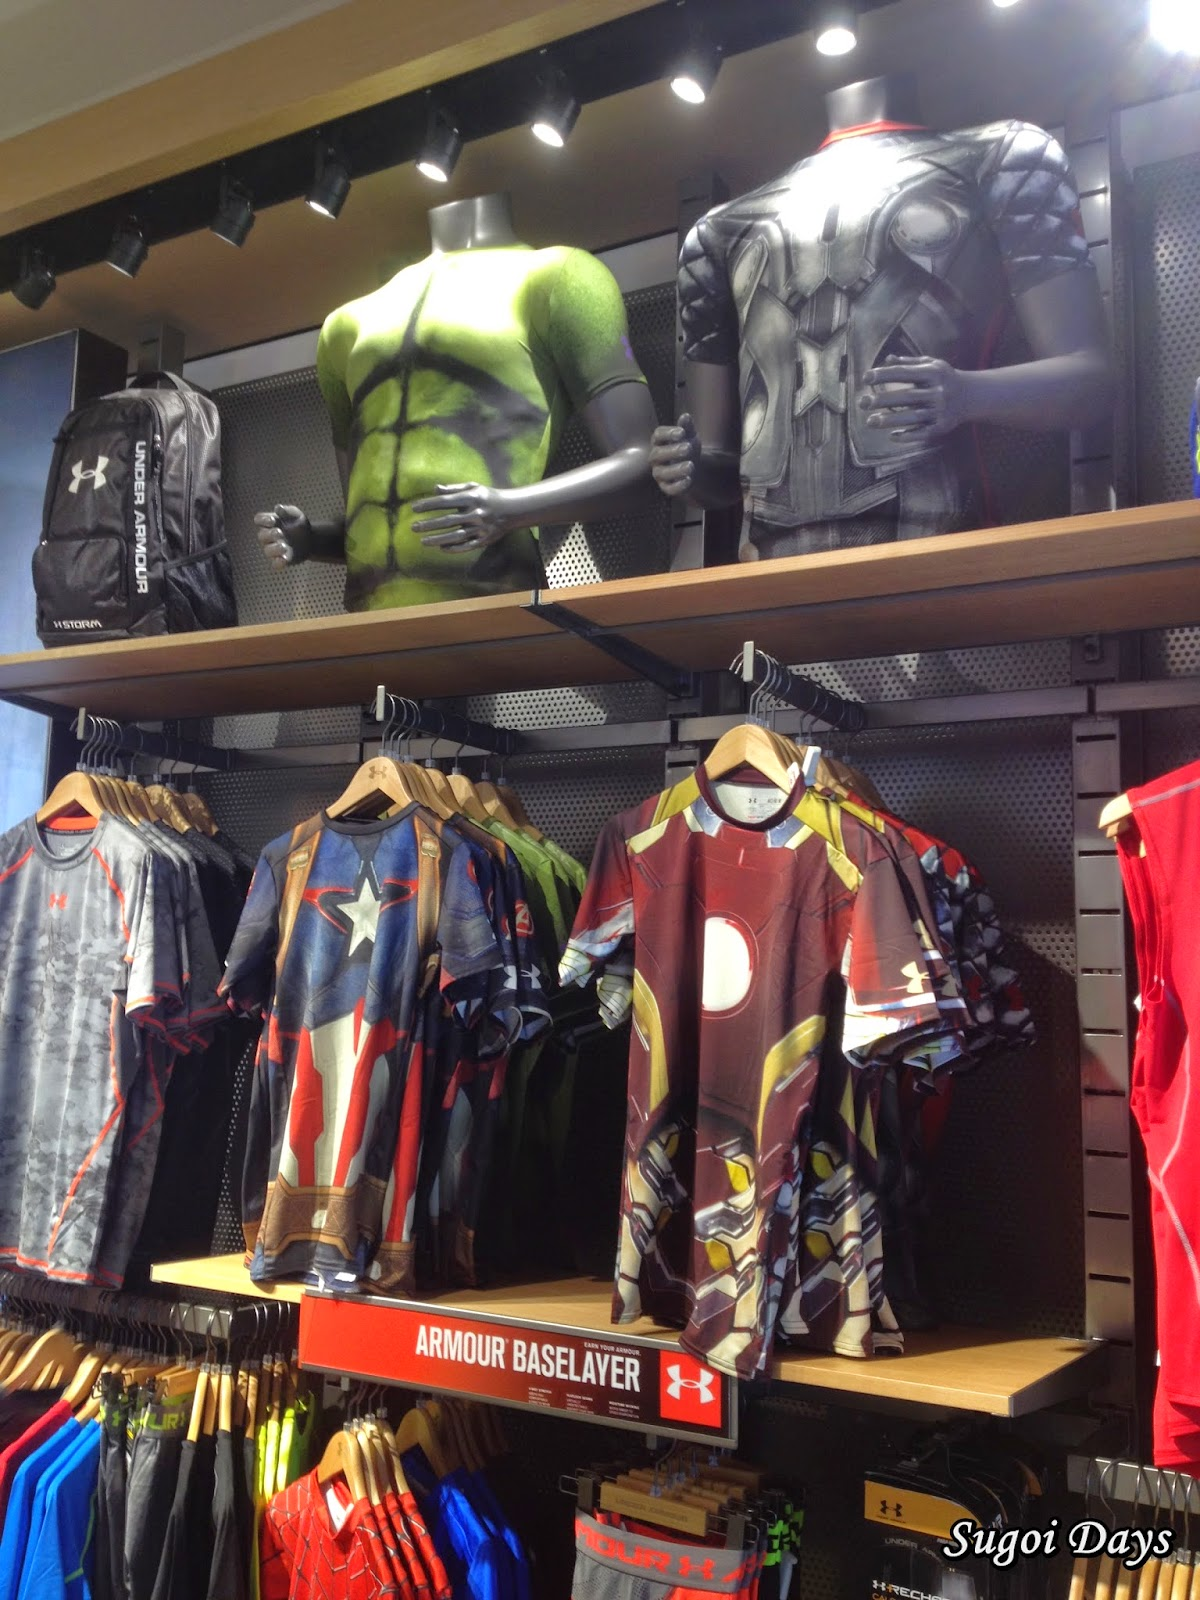 Sugoi Days: Under Armour has landed in Midvalley!